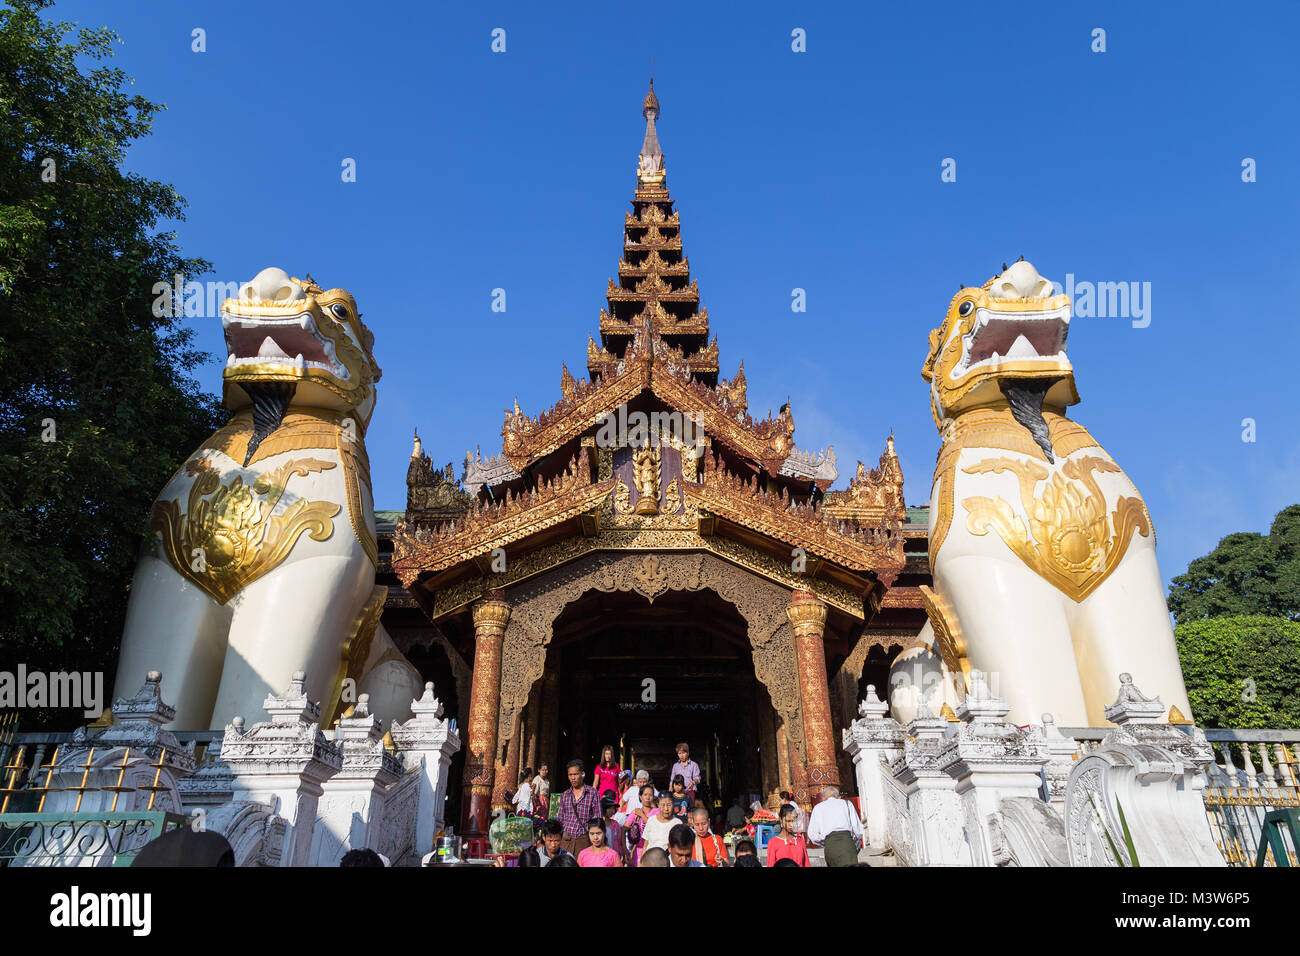 People at the Shwedagon Pagoda's eastern entrance in Yangon, Myanmar. Two giant chinthes or leogryphs (stylised - Stock Image